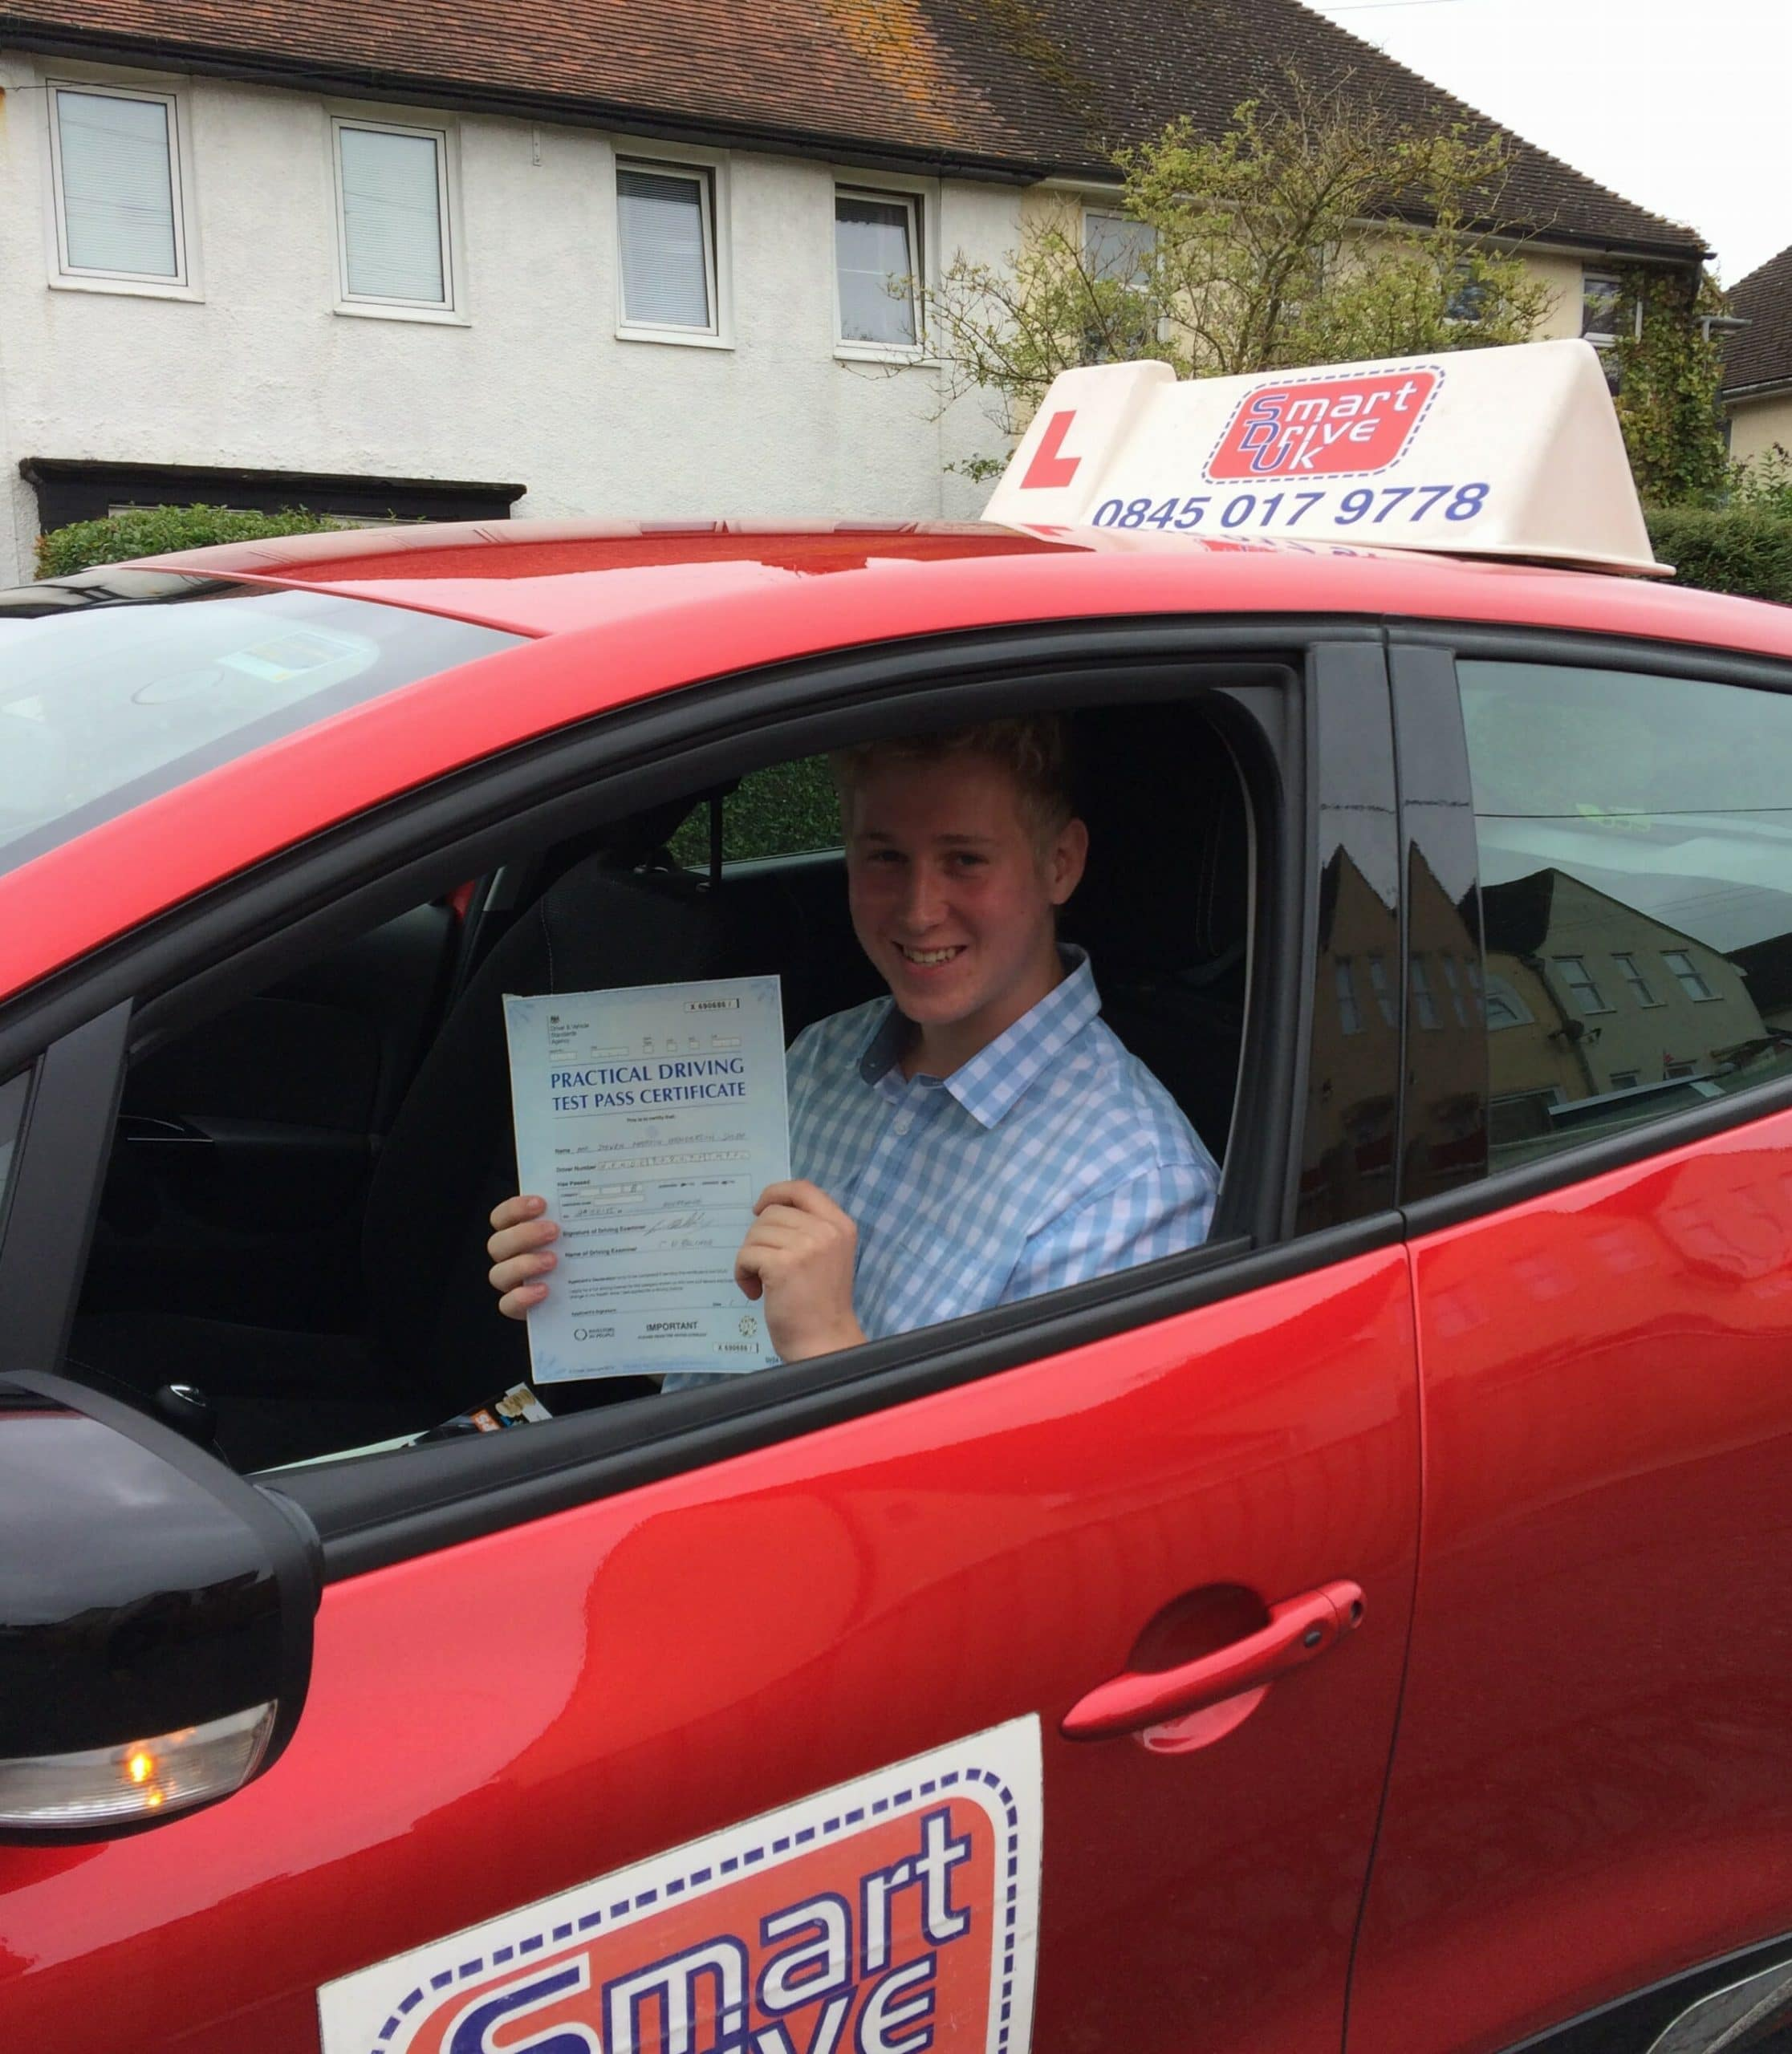 Congratulations to Steven from Worthing